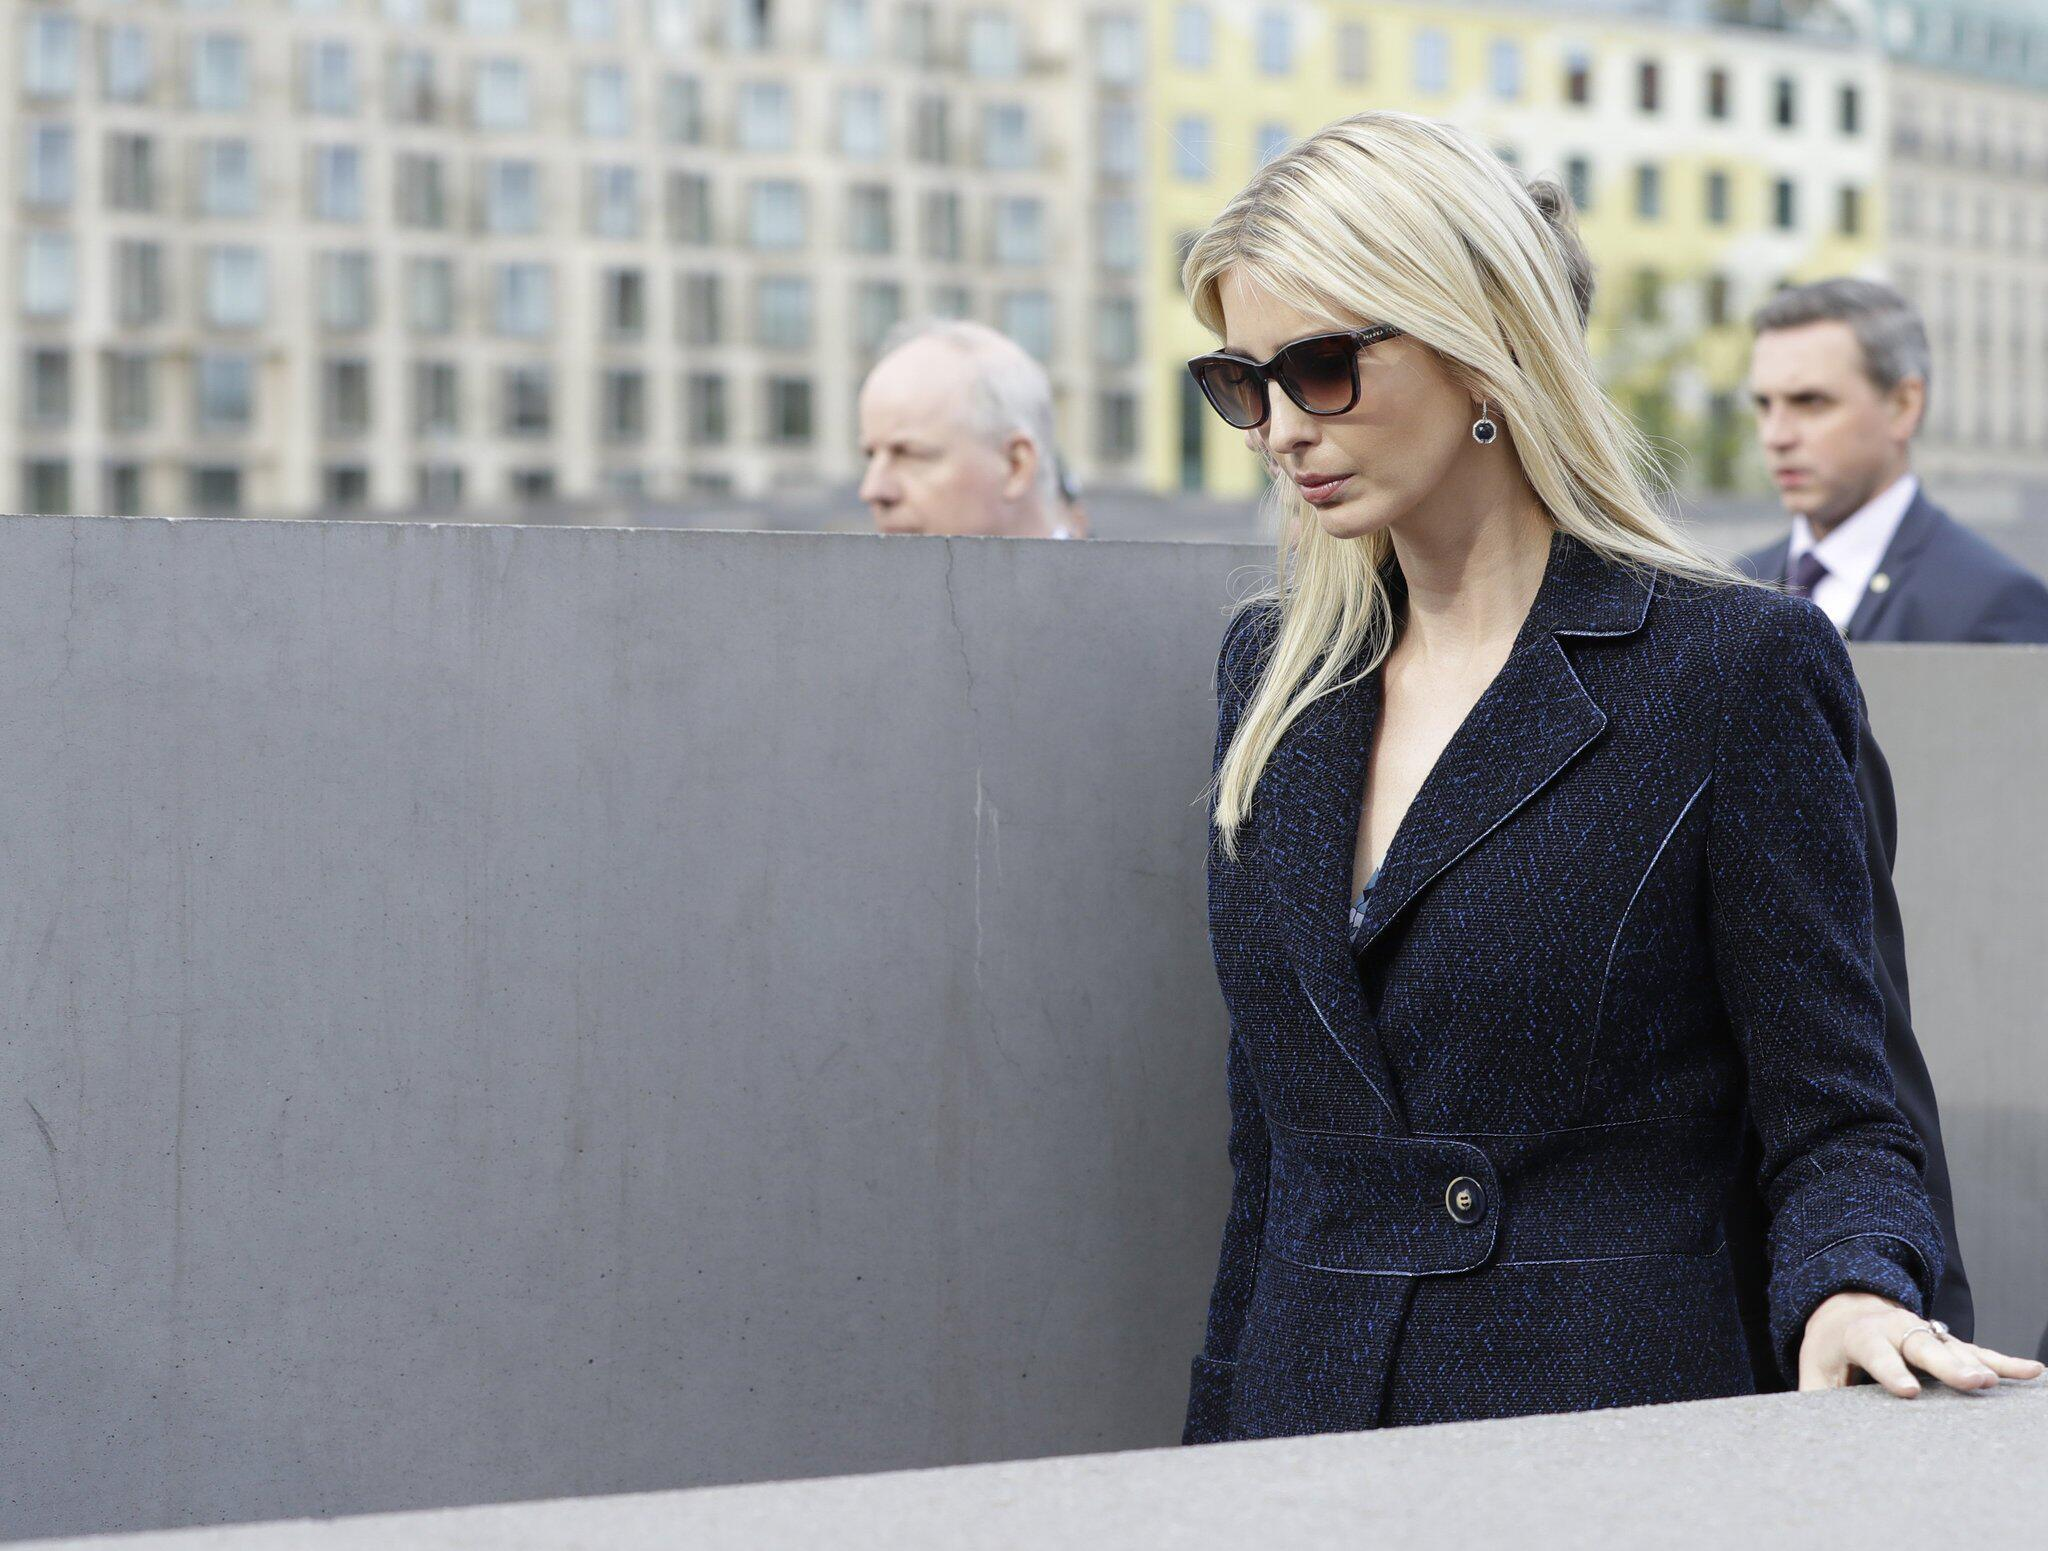 Bild zu W20 Summit- Ivanka Trump visits Holocaust memorial